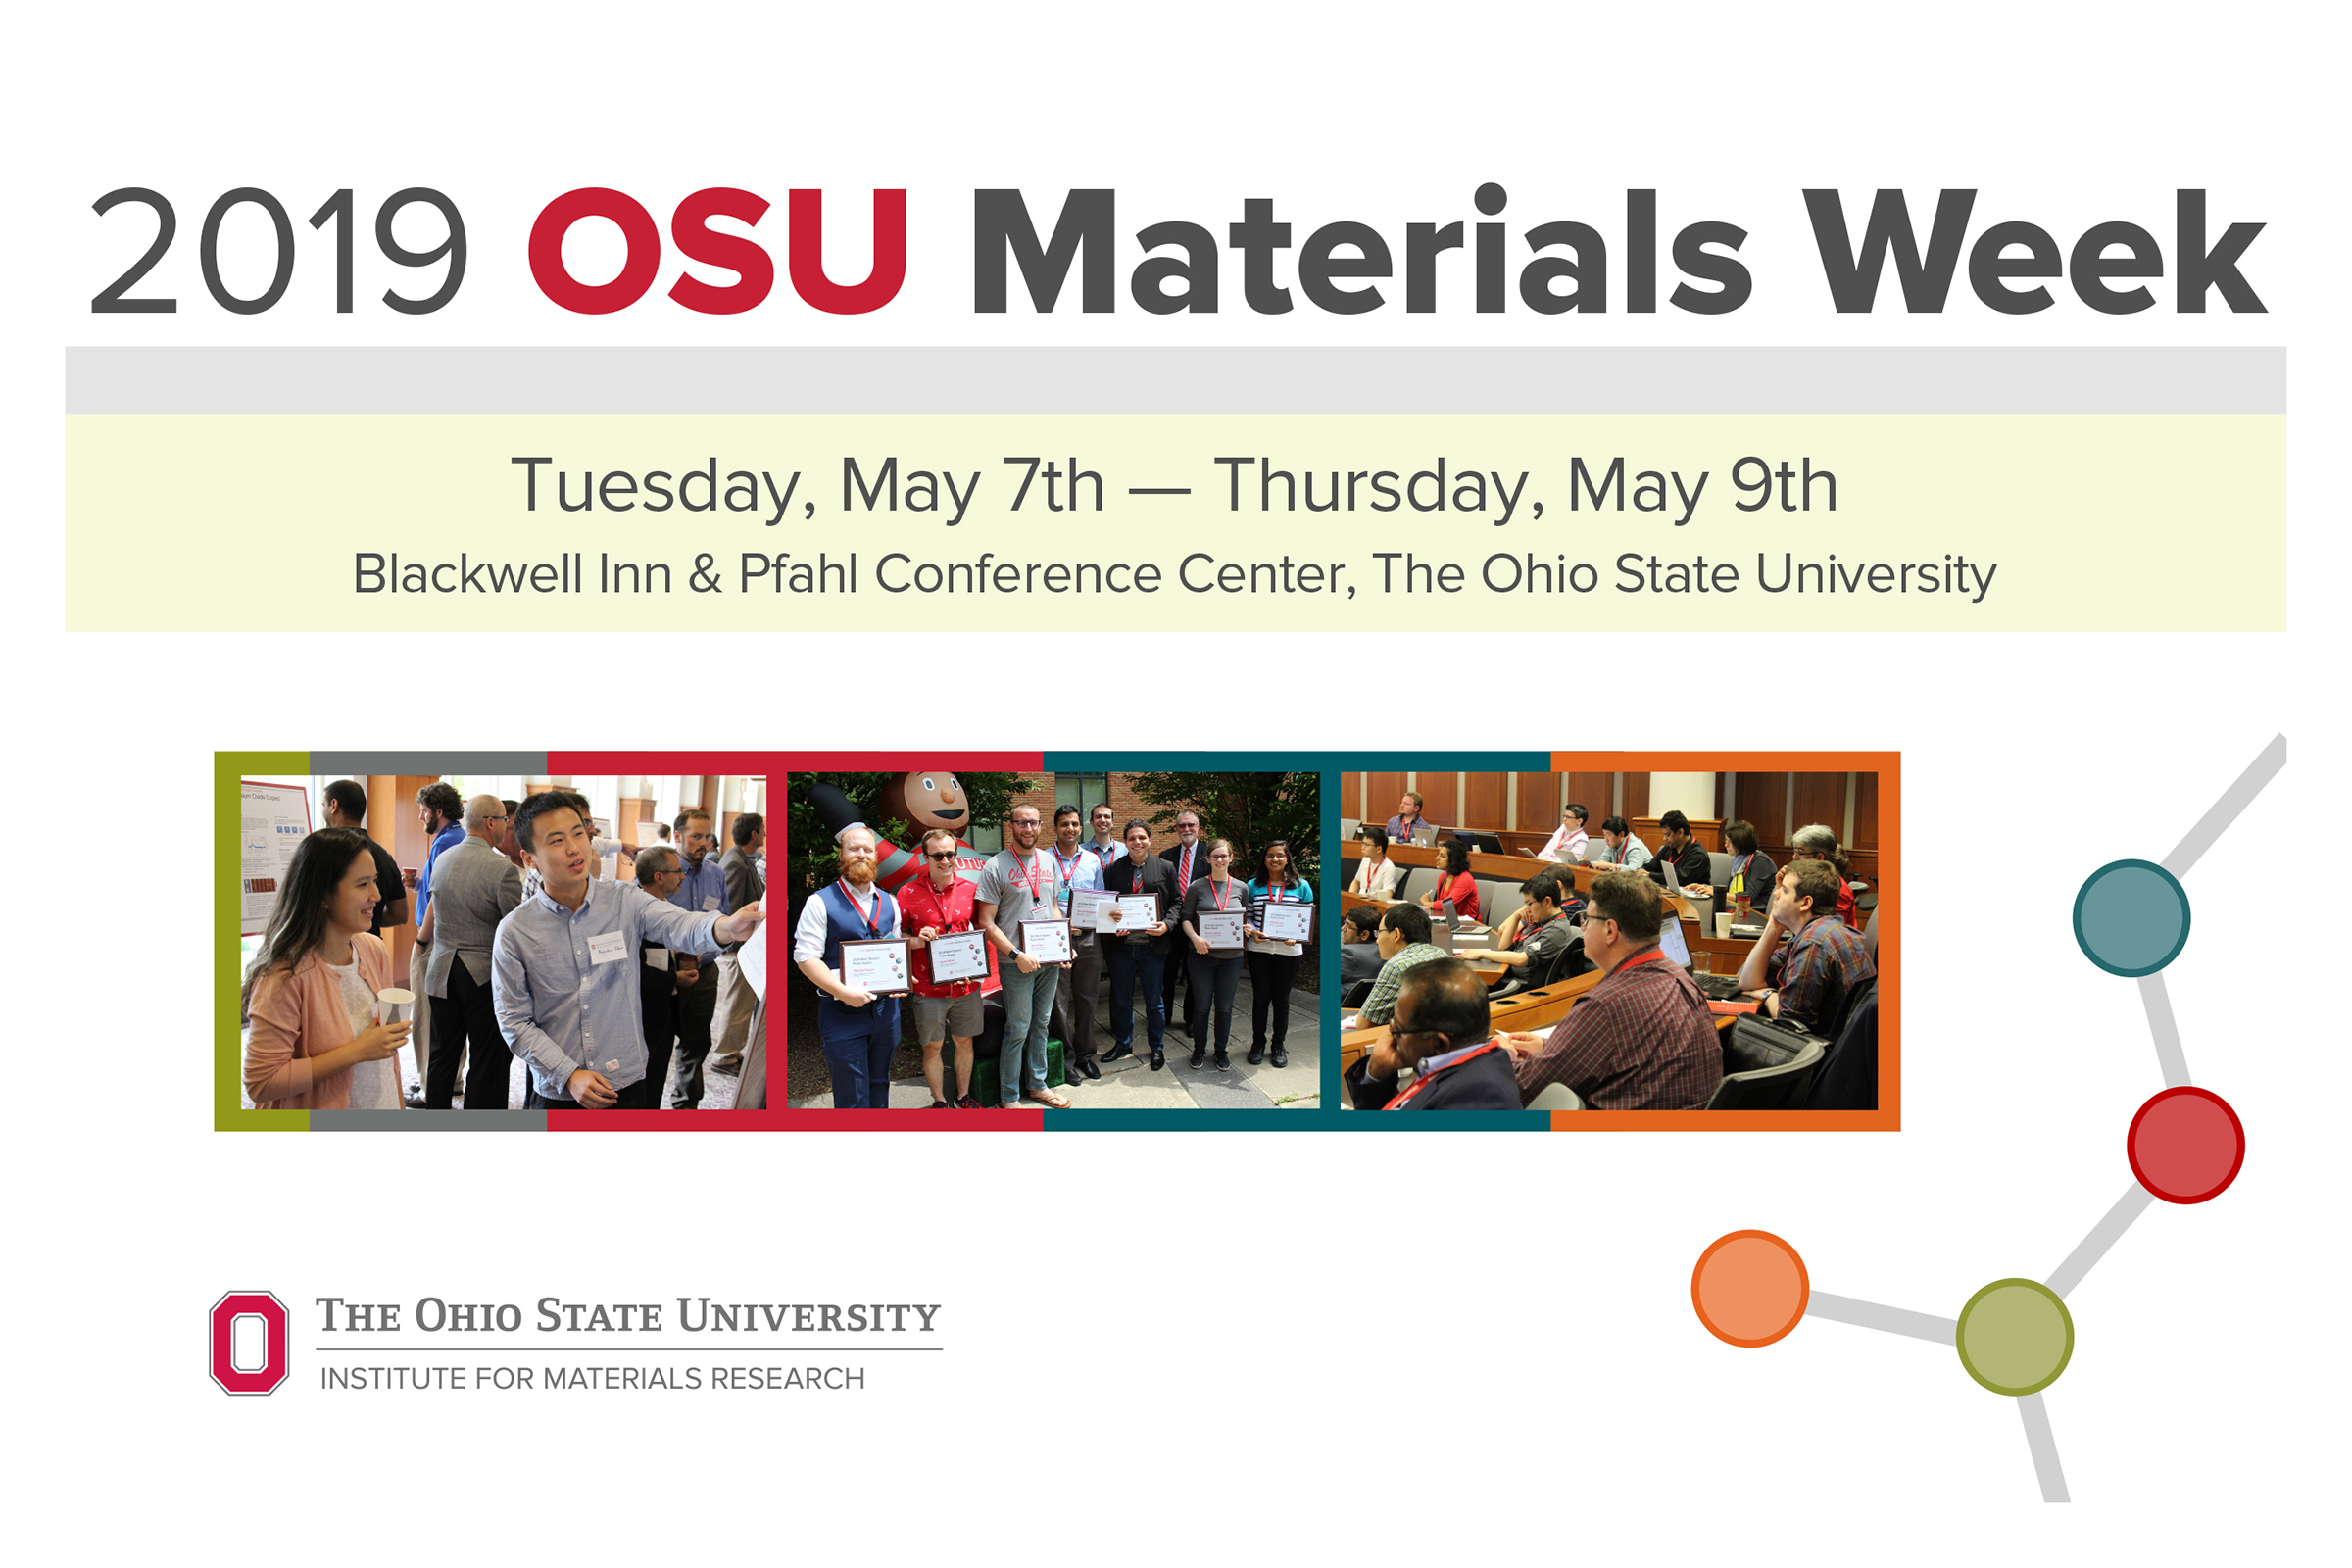 2019 OSU Materials Week Conference